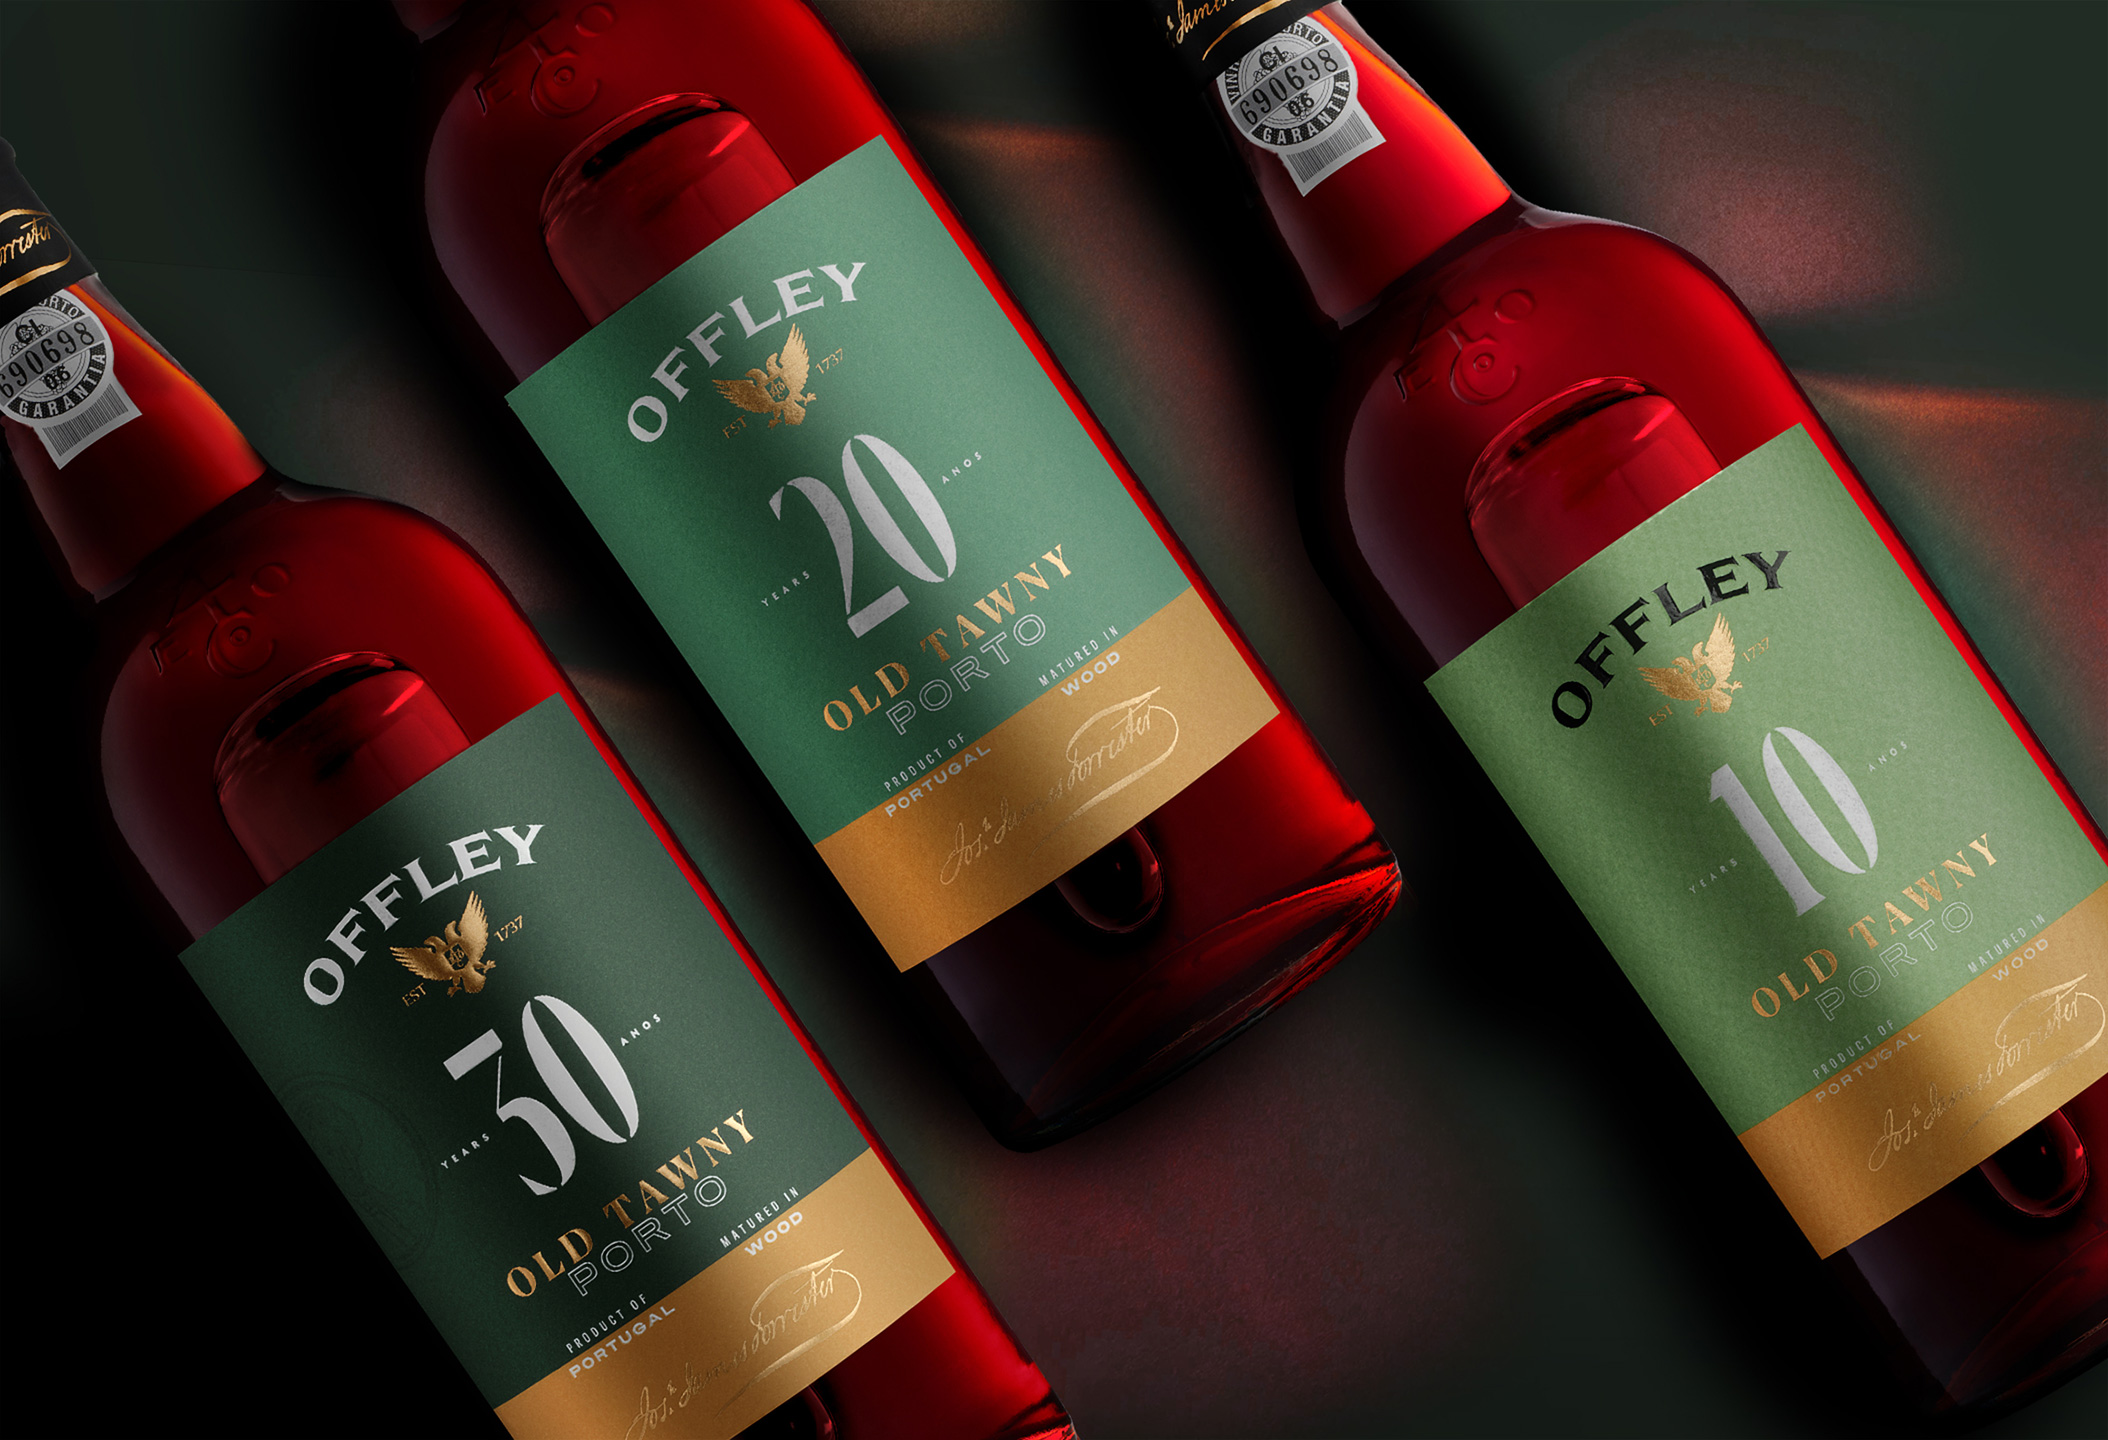 Offleys New Aged Port by Volta